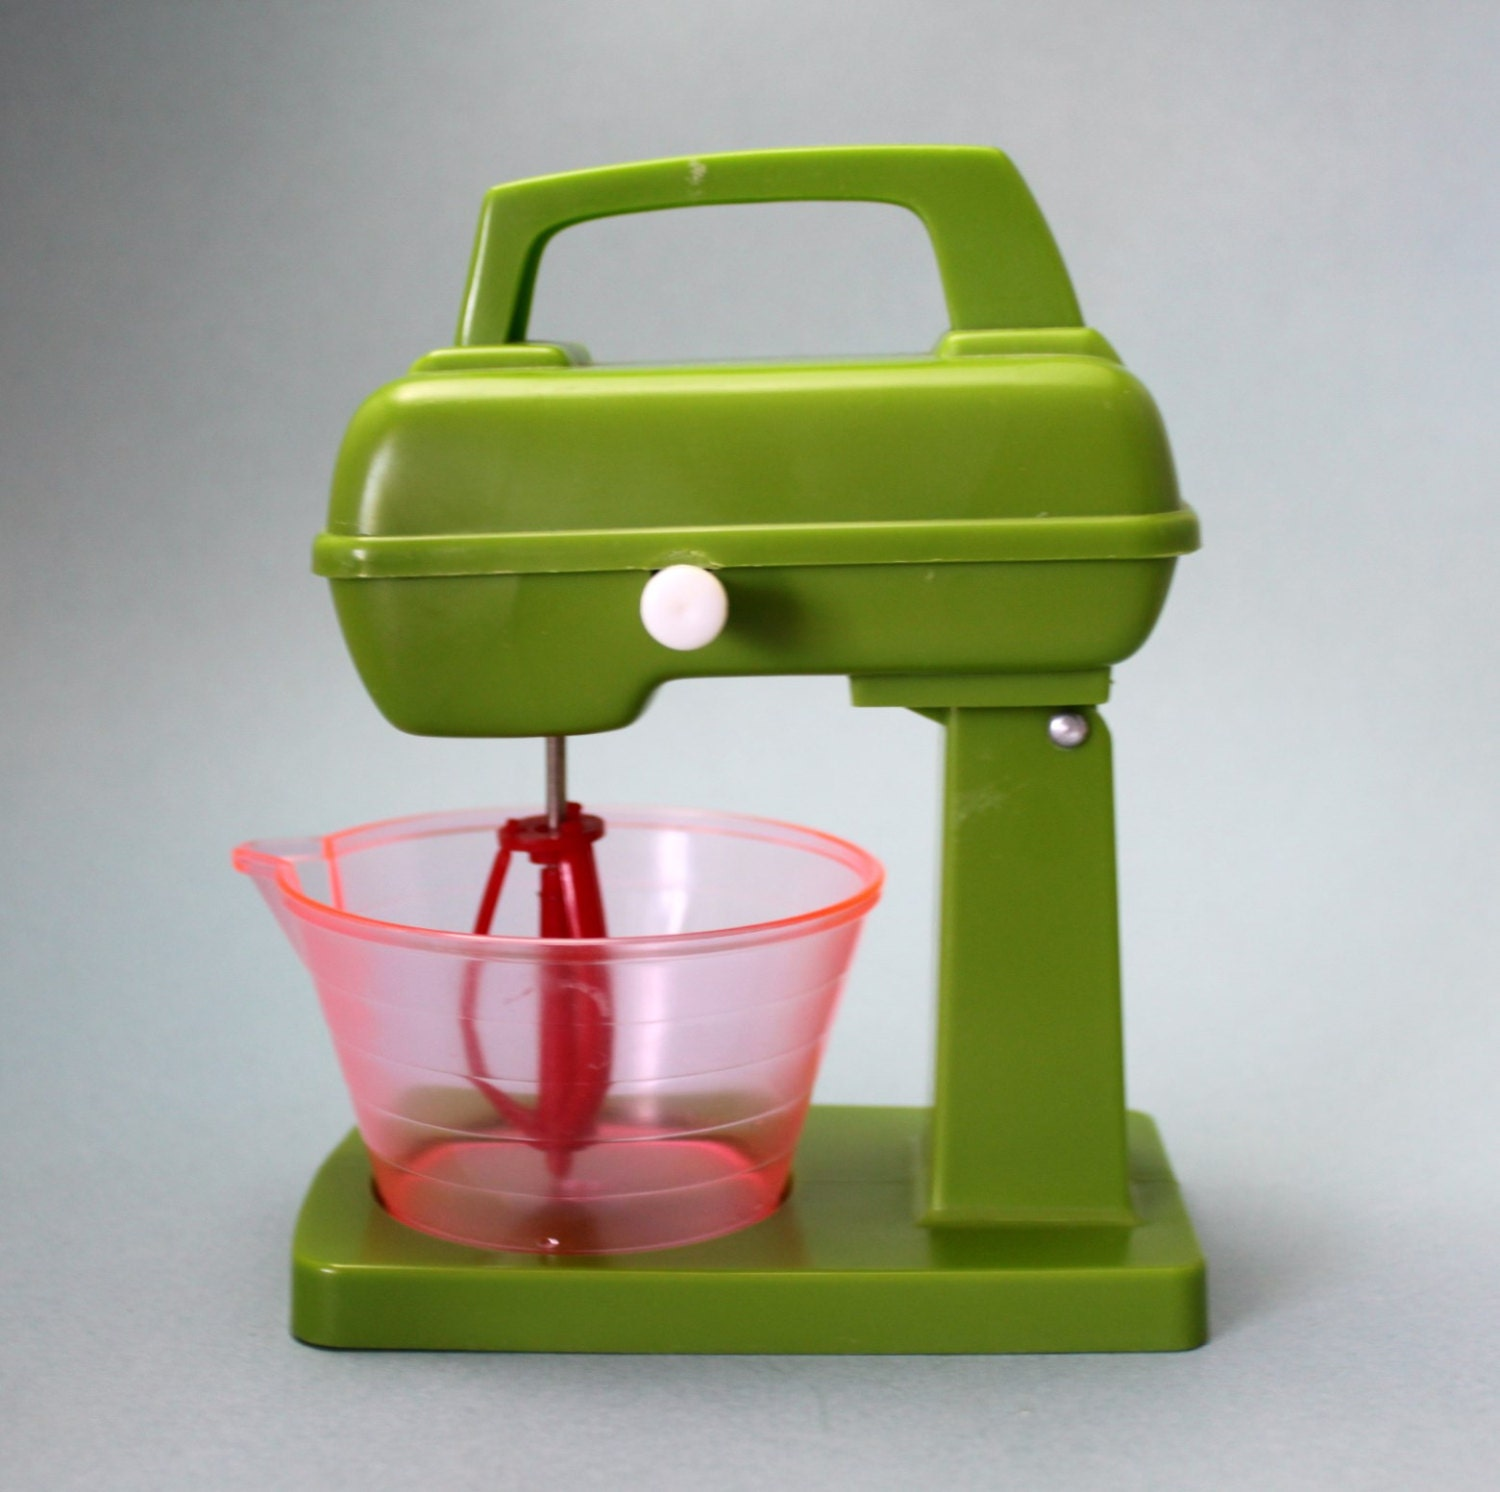 Vintage Miniature Plastic Toy Mixer And Bowl Stand Mixer